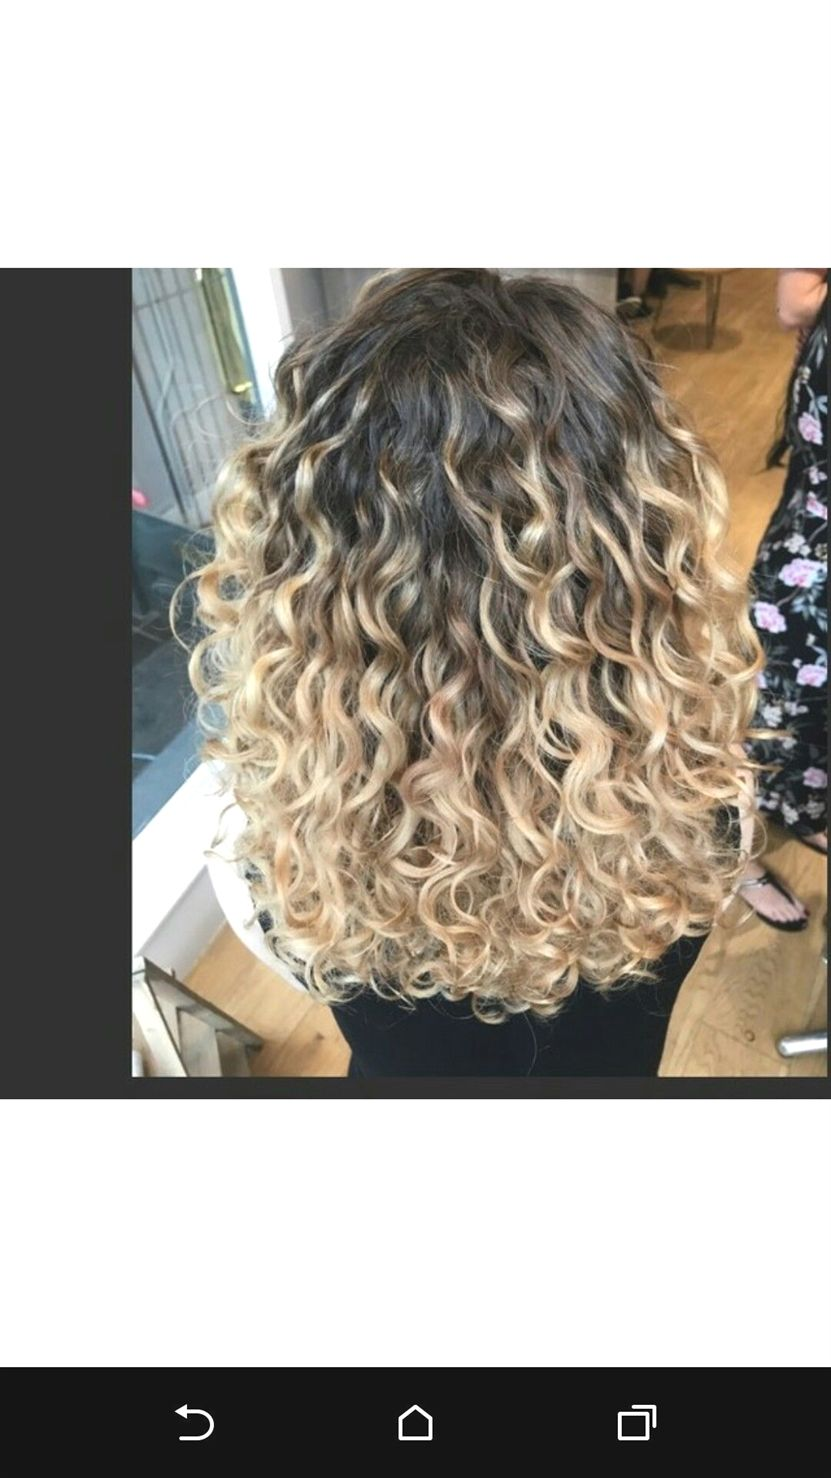 Blondeombre Ombre Curly Hair Curly Balayage Hair Balayage Hair